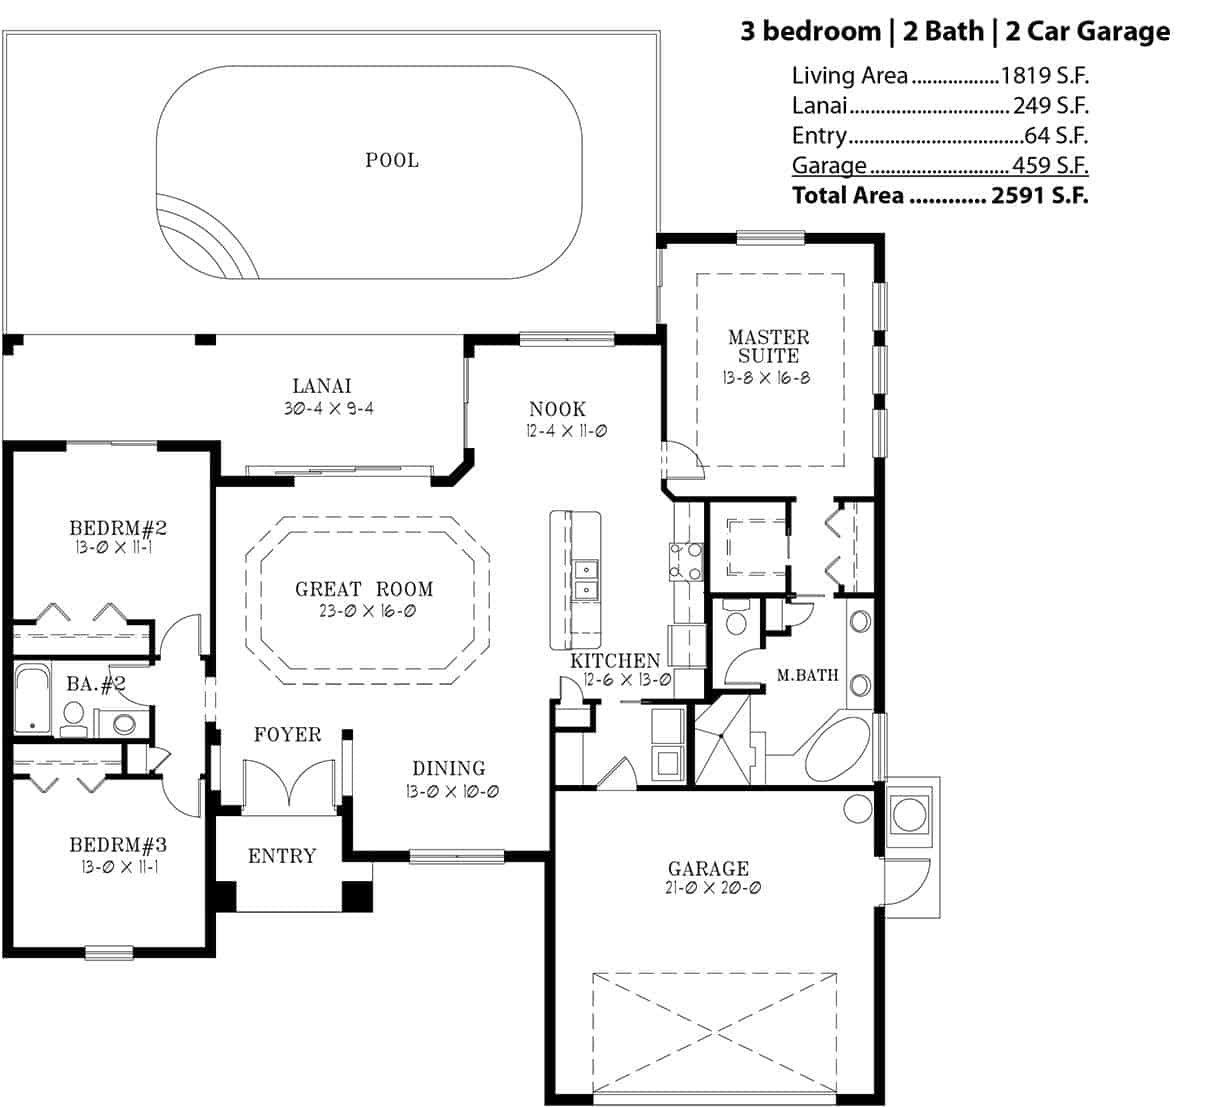 3 bedroom 2 bath 2 car garage floor plans 28 images for Car floor plan